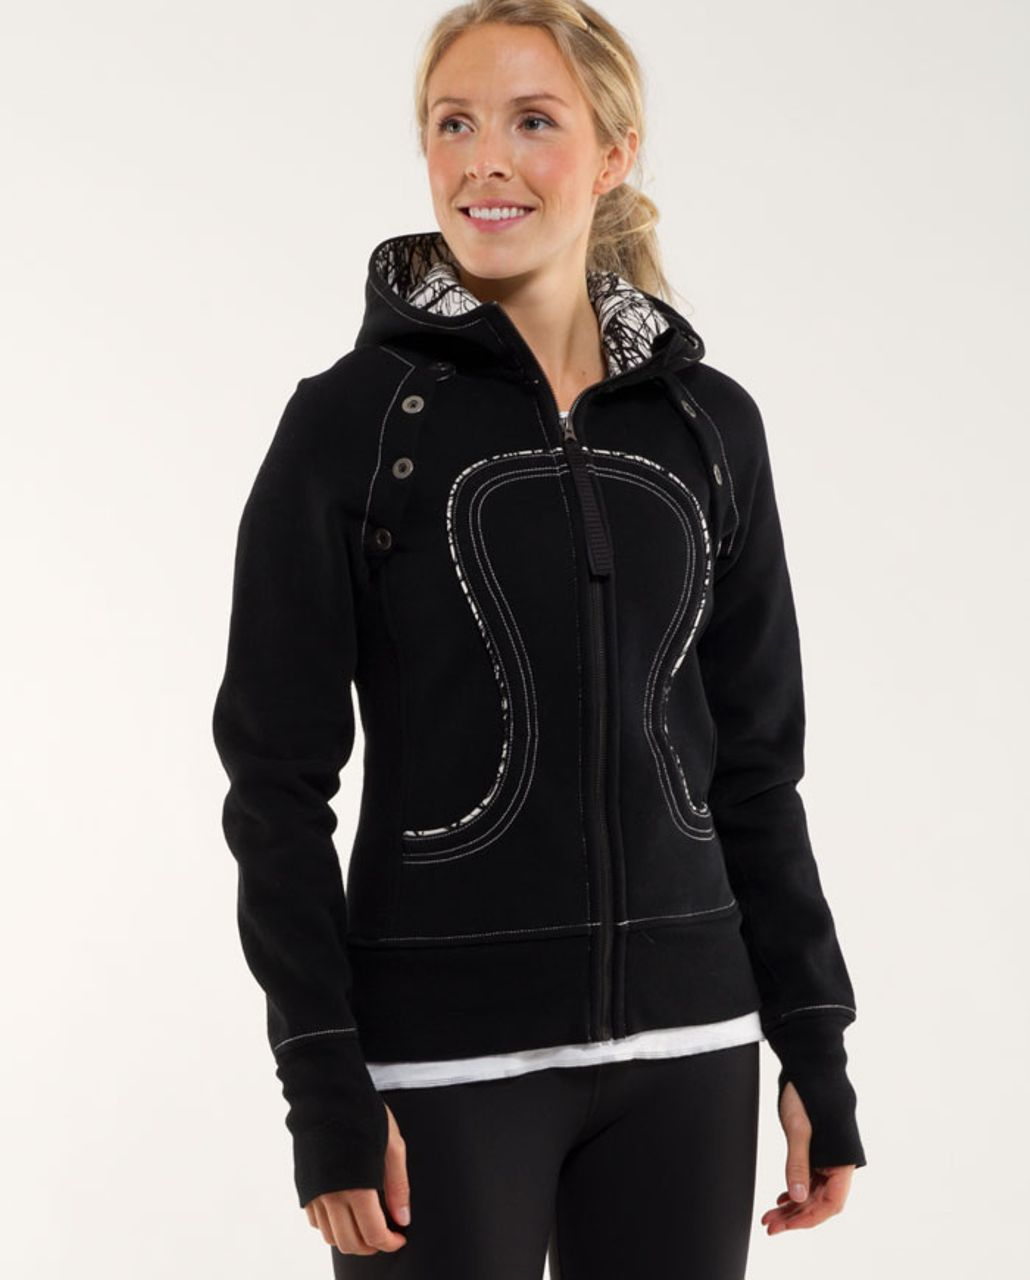 Lululemon Scuba Hoodie *Detachable Sleeves - Black /  Ghost Nesting Black Bird Print